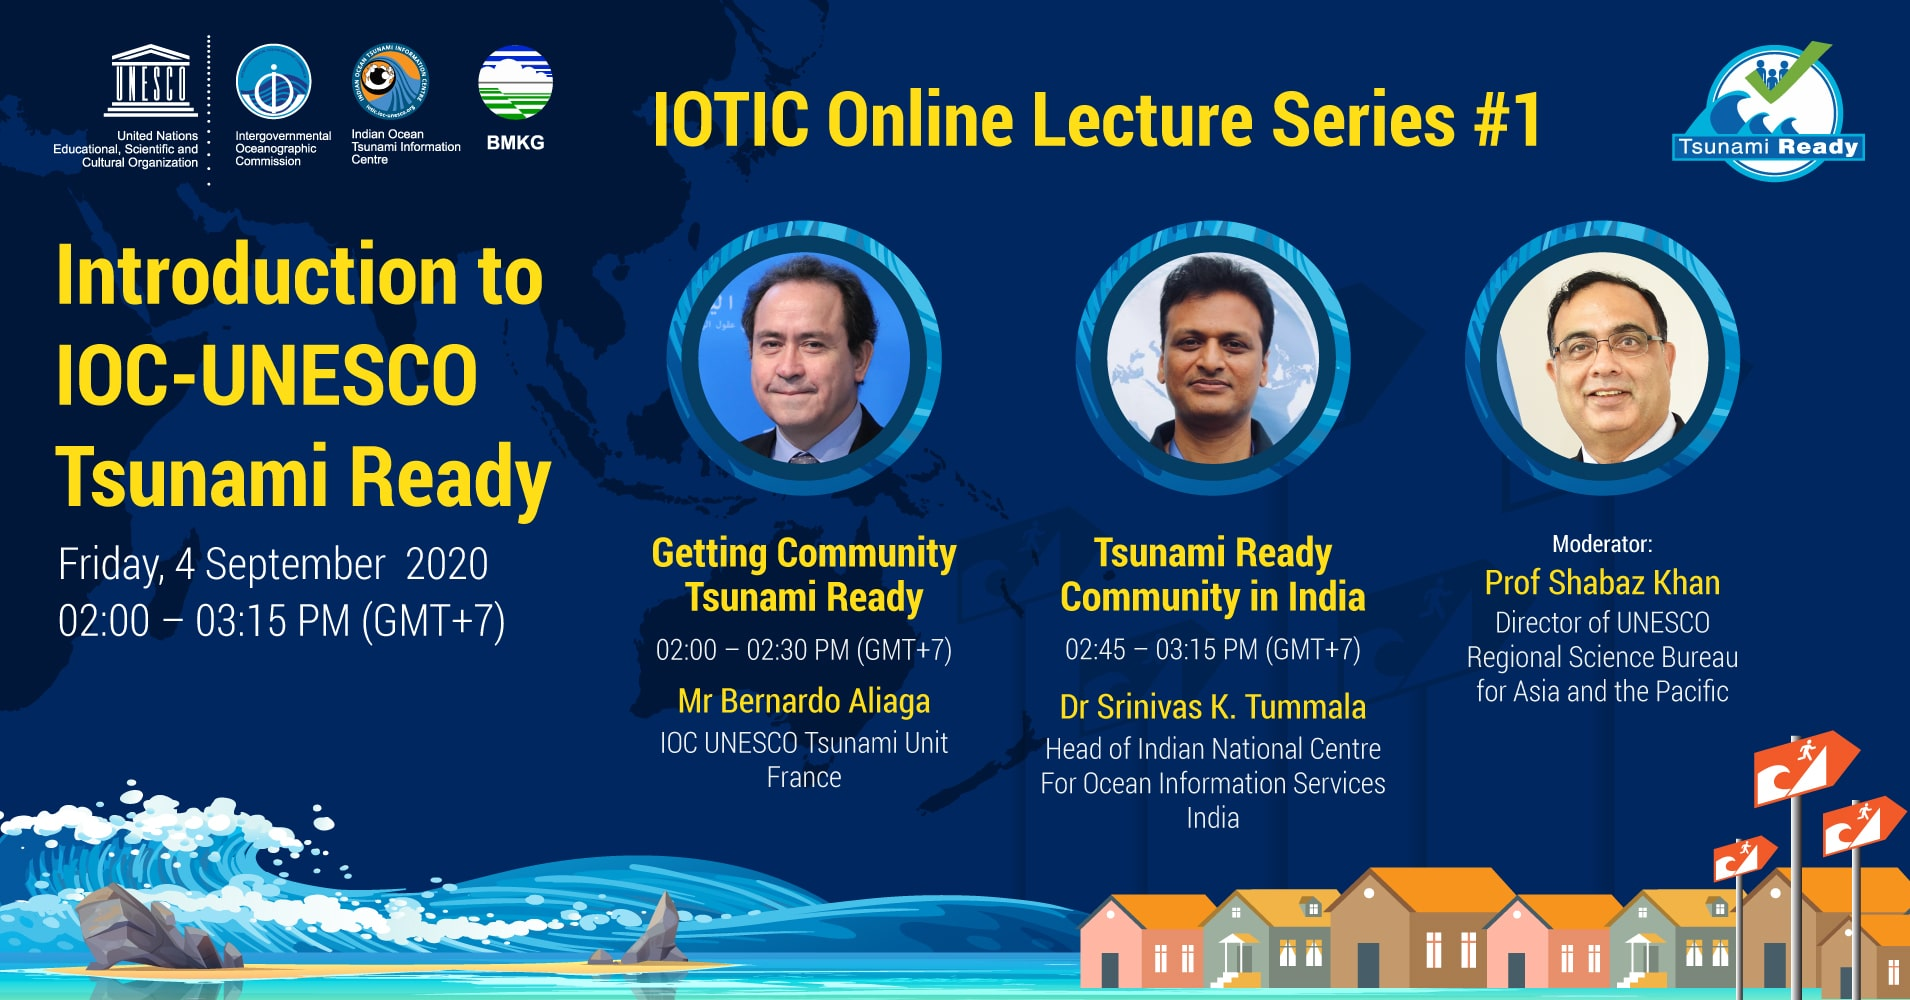 Online Lecture Series #1